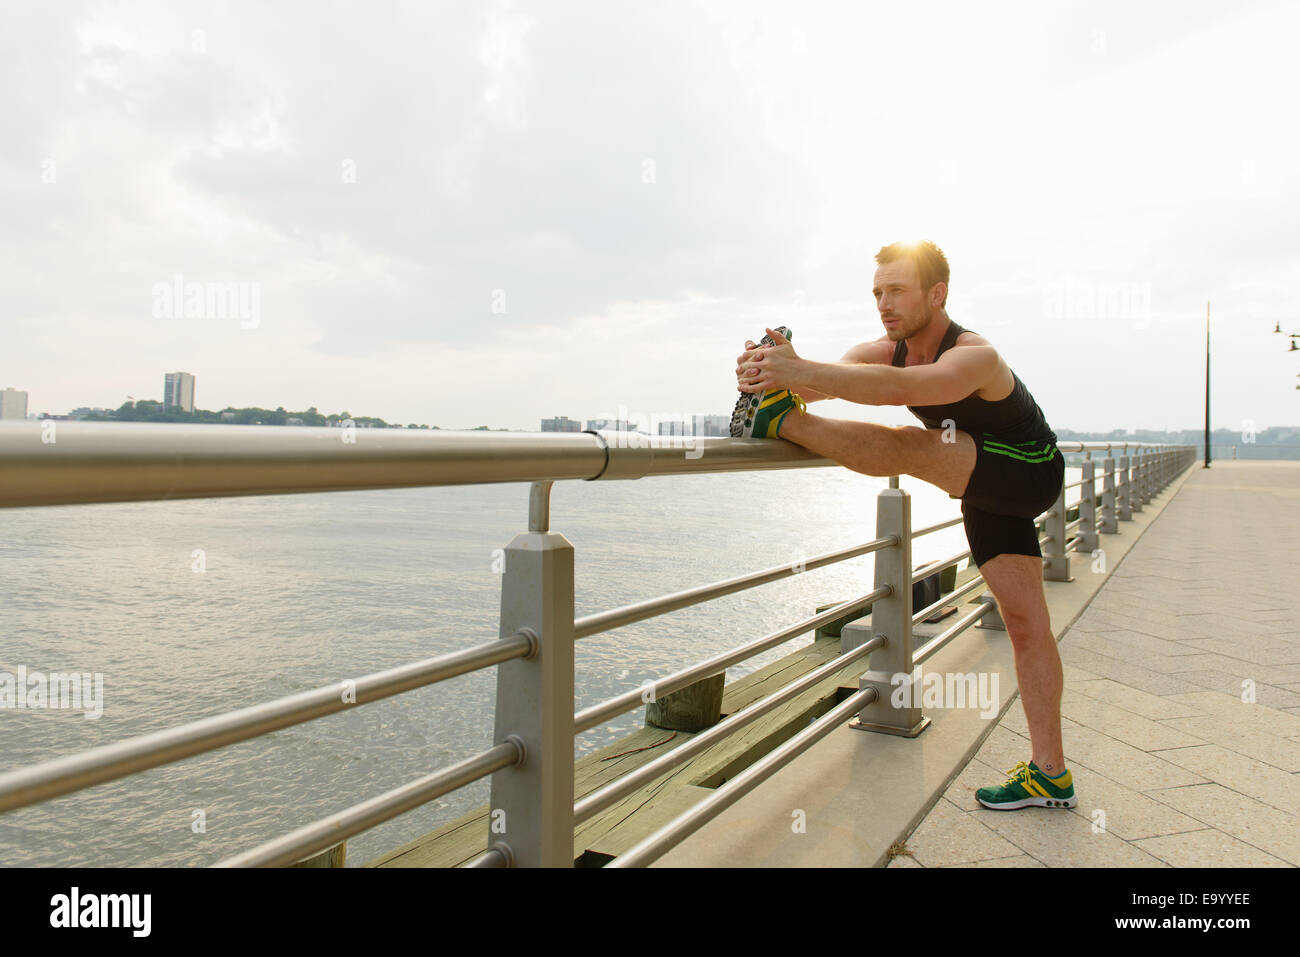 Young man touching toes on riverside railings - Stock Image